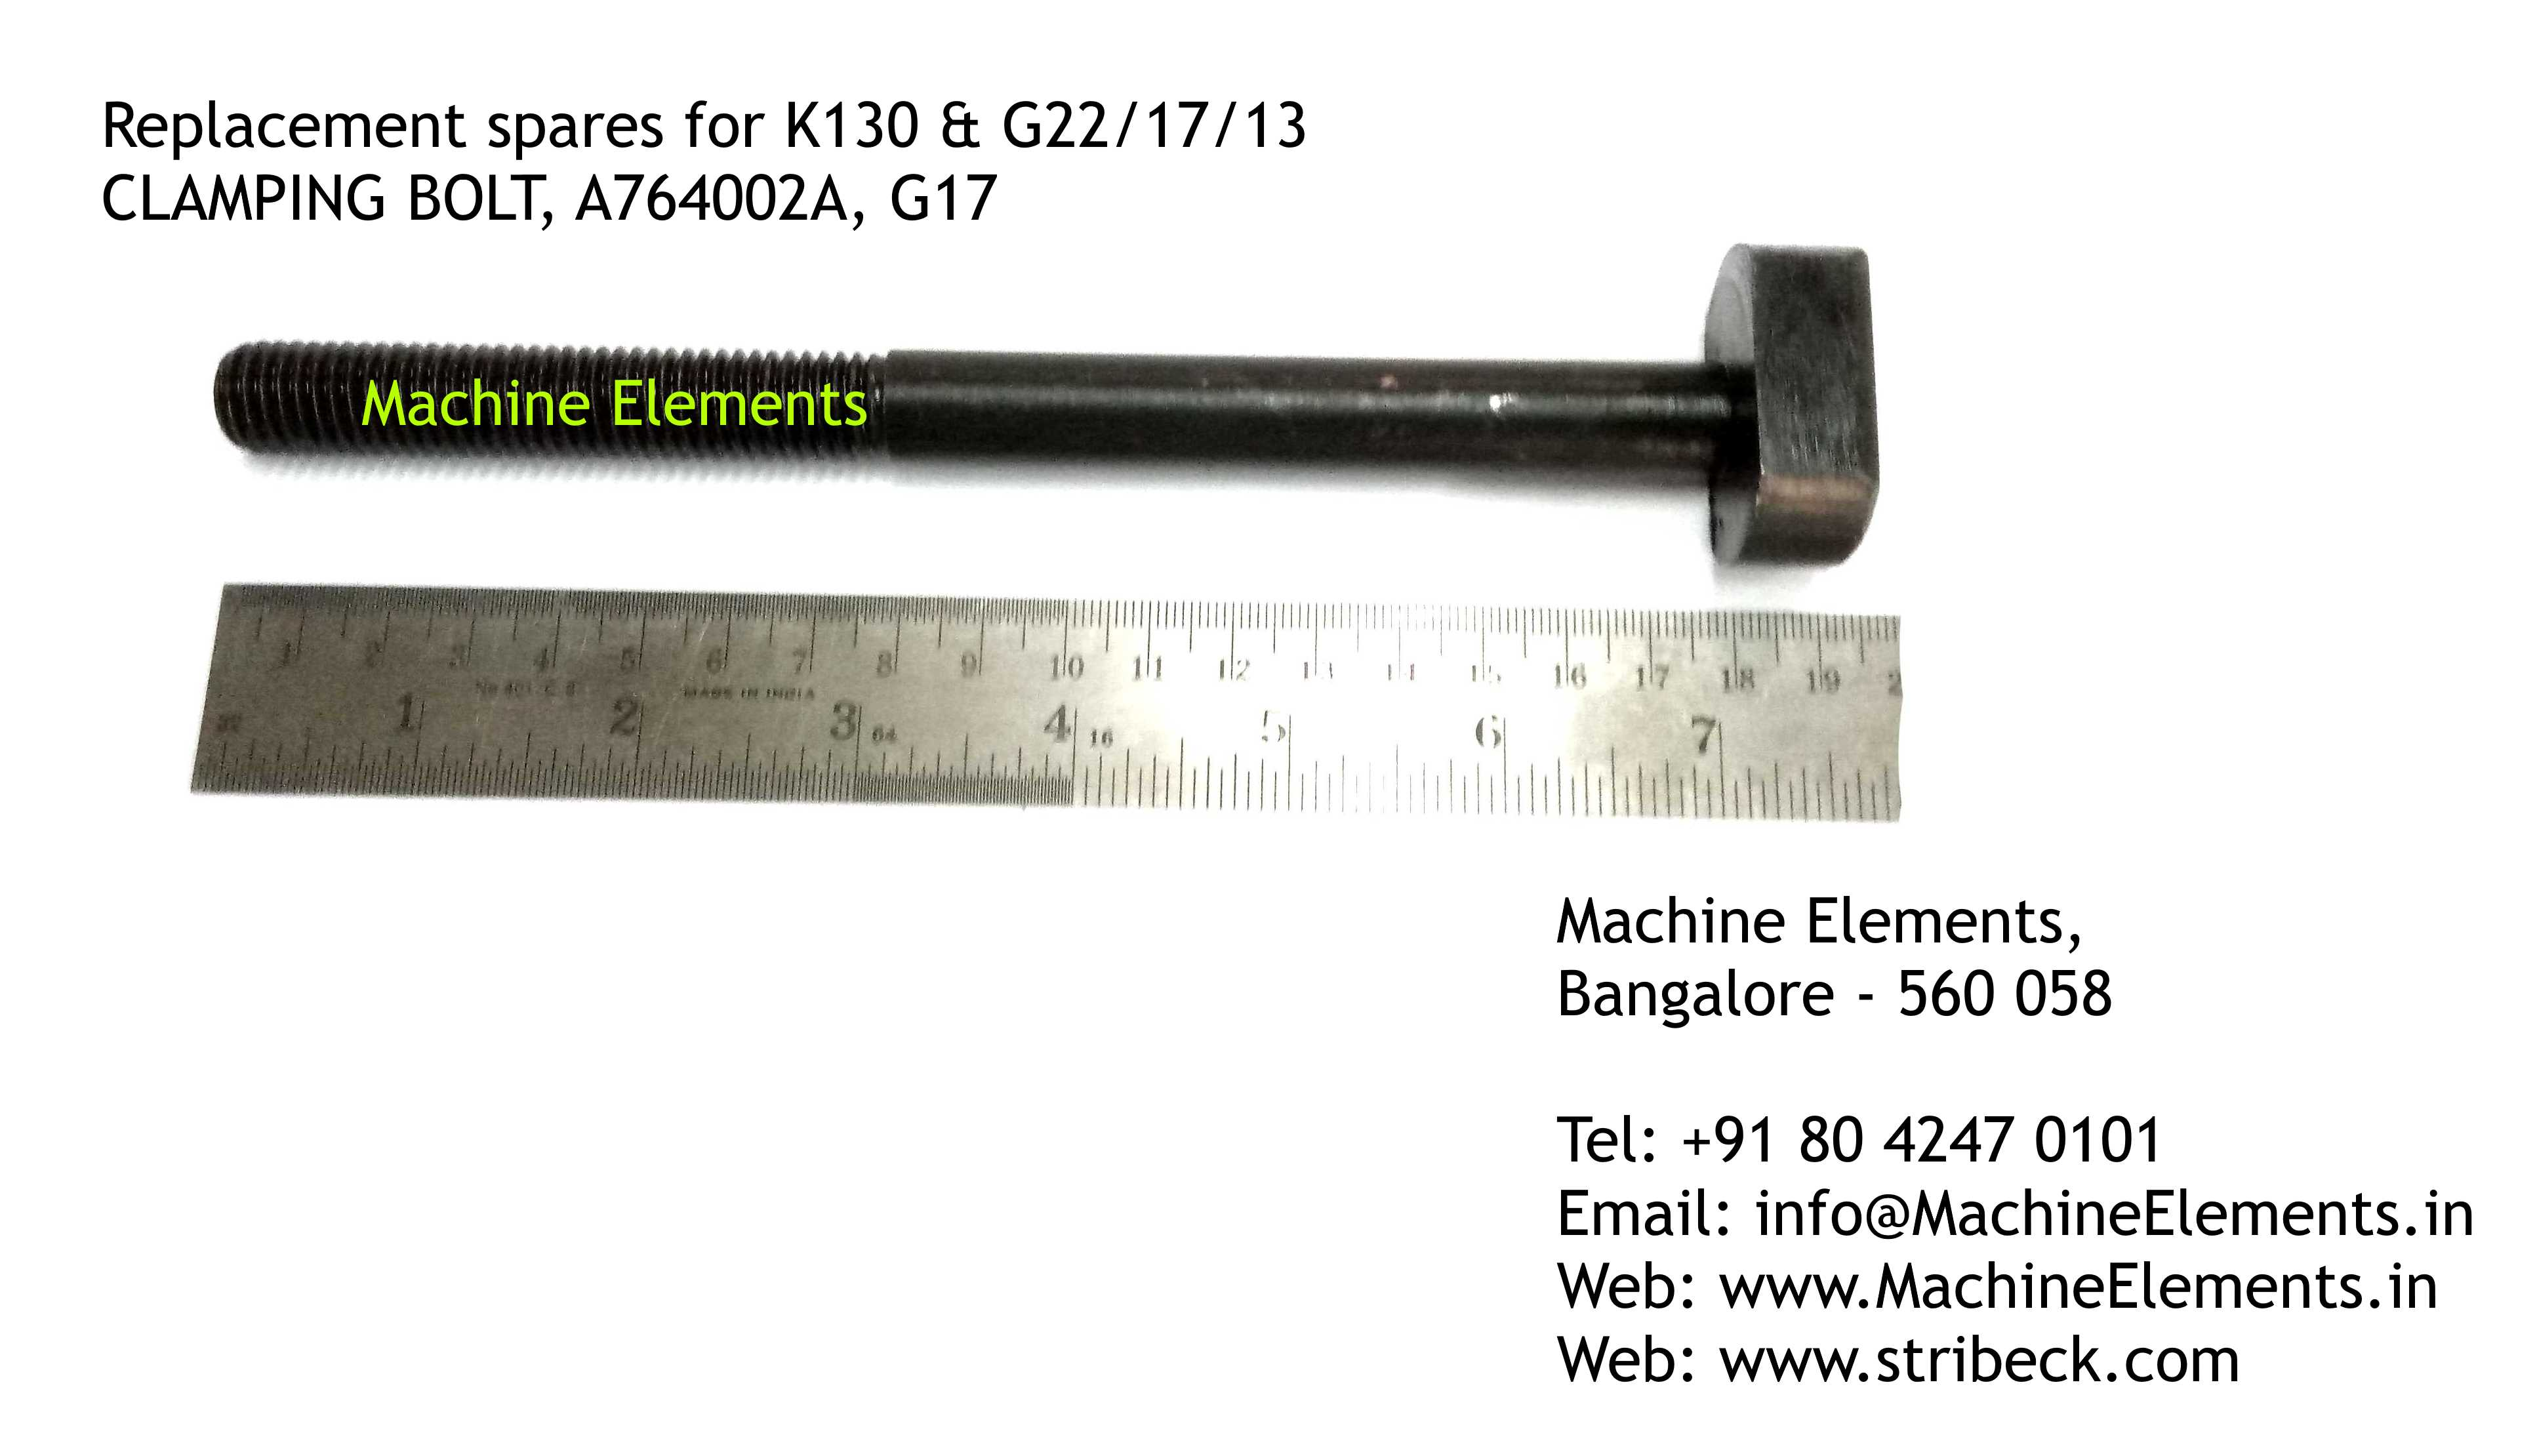 CLAMPING BOLT, A764002A